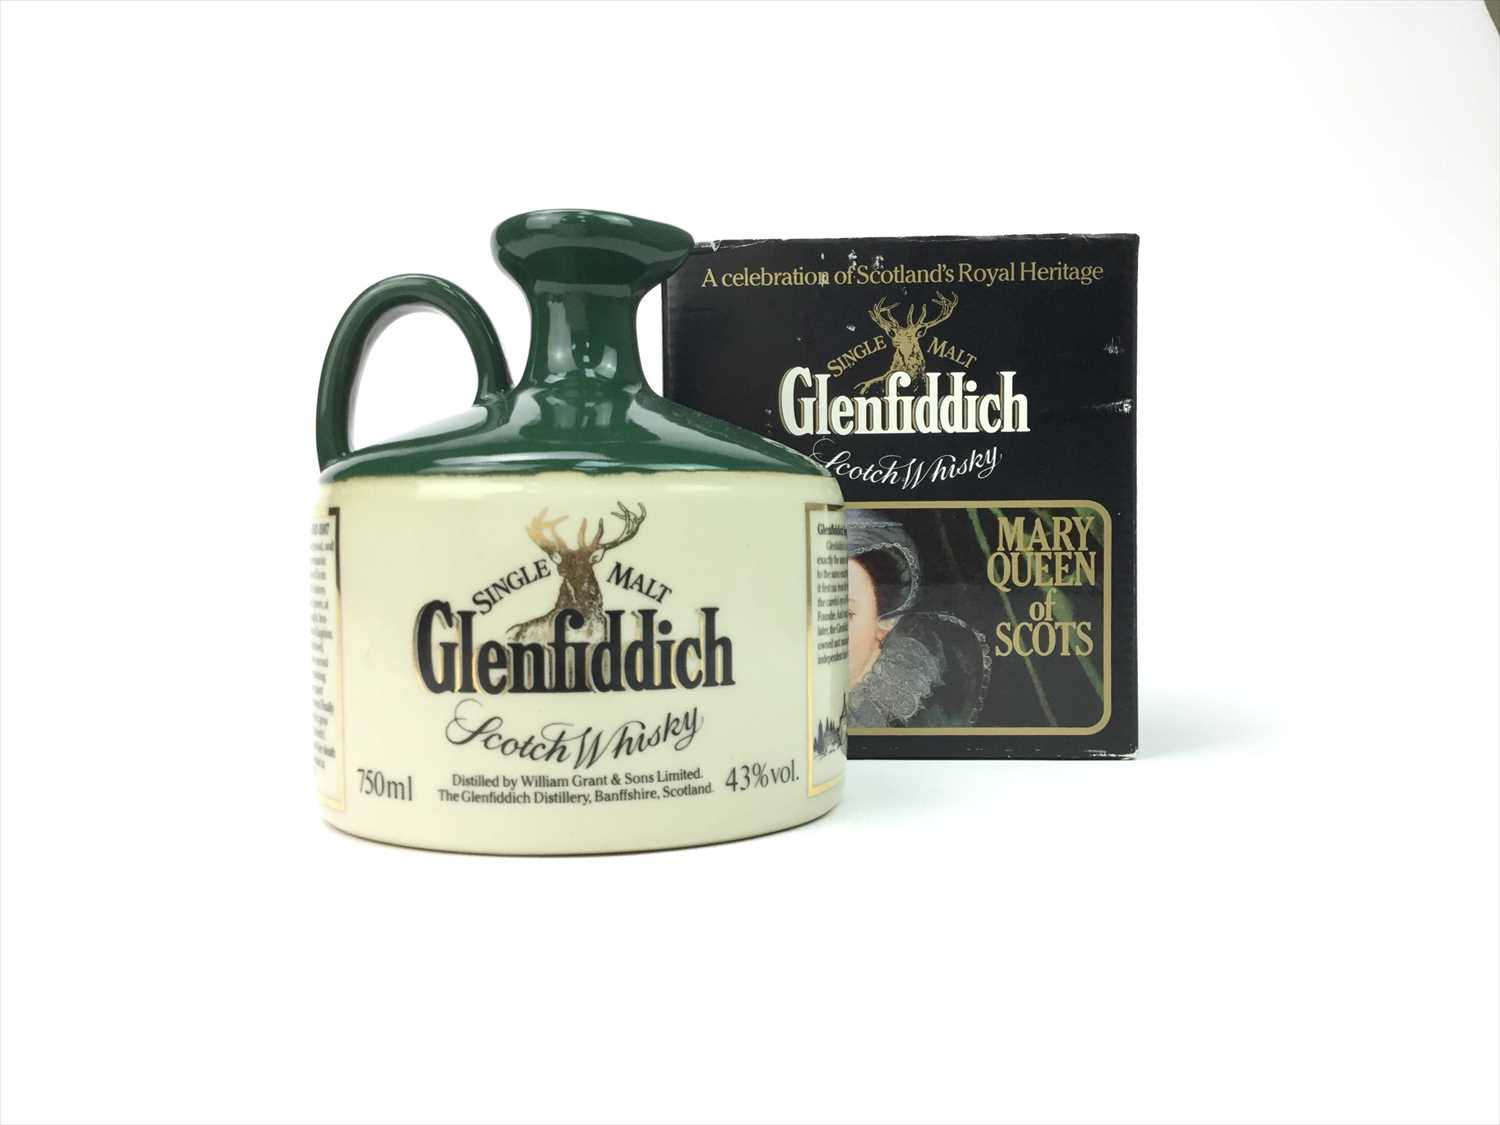 Lot 324-GLENFIDDICH MARY QUEEN OF SCOTS CROCK